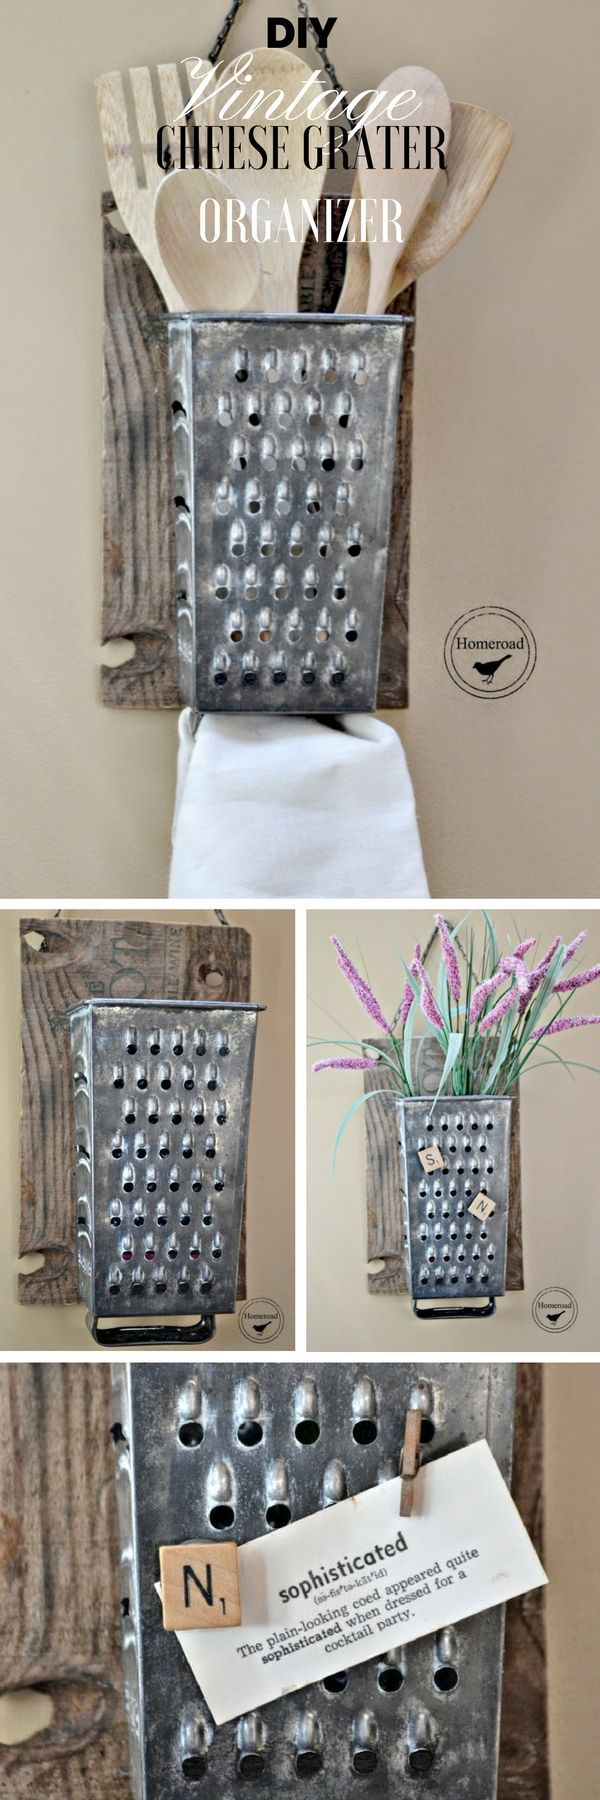 15 Organization Diys That Will Make Your Kitchen Pretty Vintage Window Decorvintage Apartment Decorfunky Home